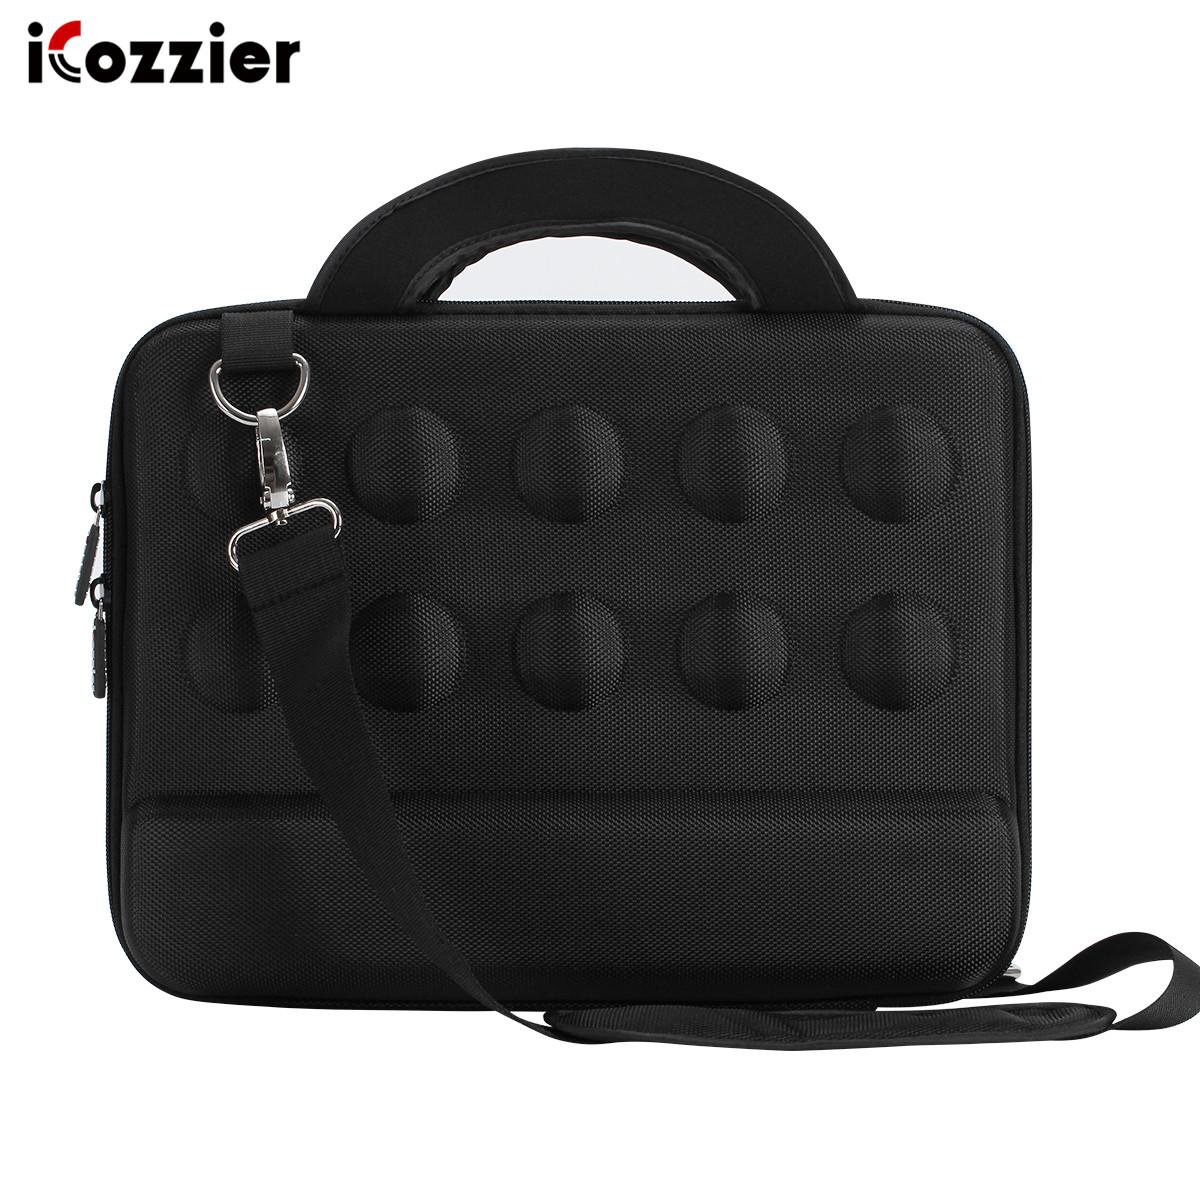 iCozzier 11.6 inch Water-Resistant Shockproof Sleeve Carrying Bag Laptop for 11.6 Macbook Pro / dell Laptop Sleeve Case Bag